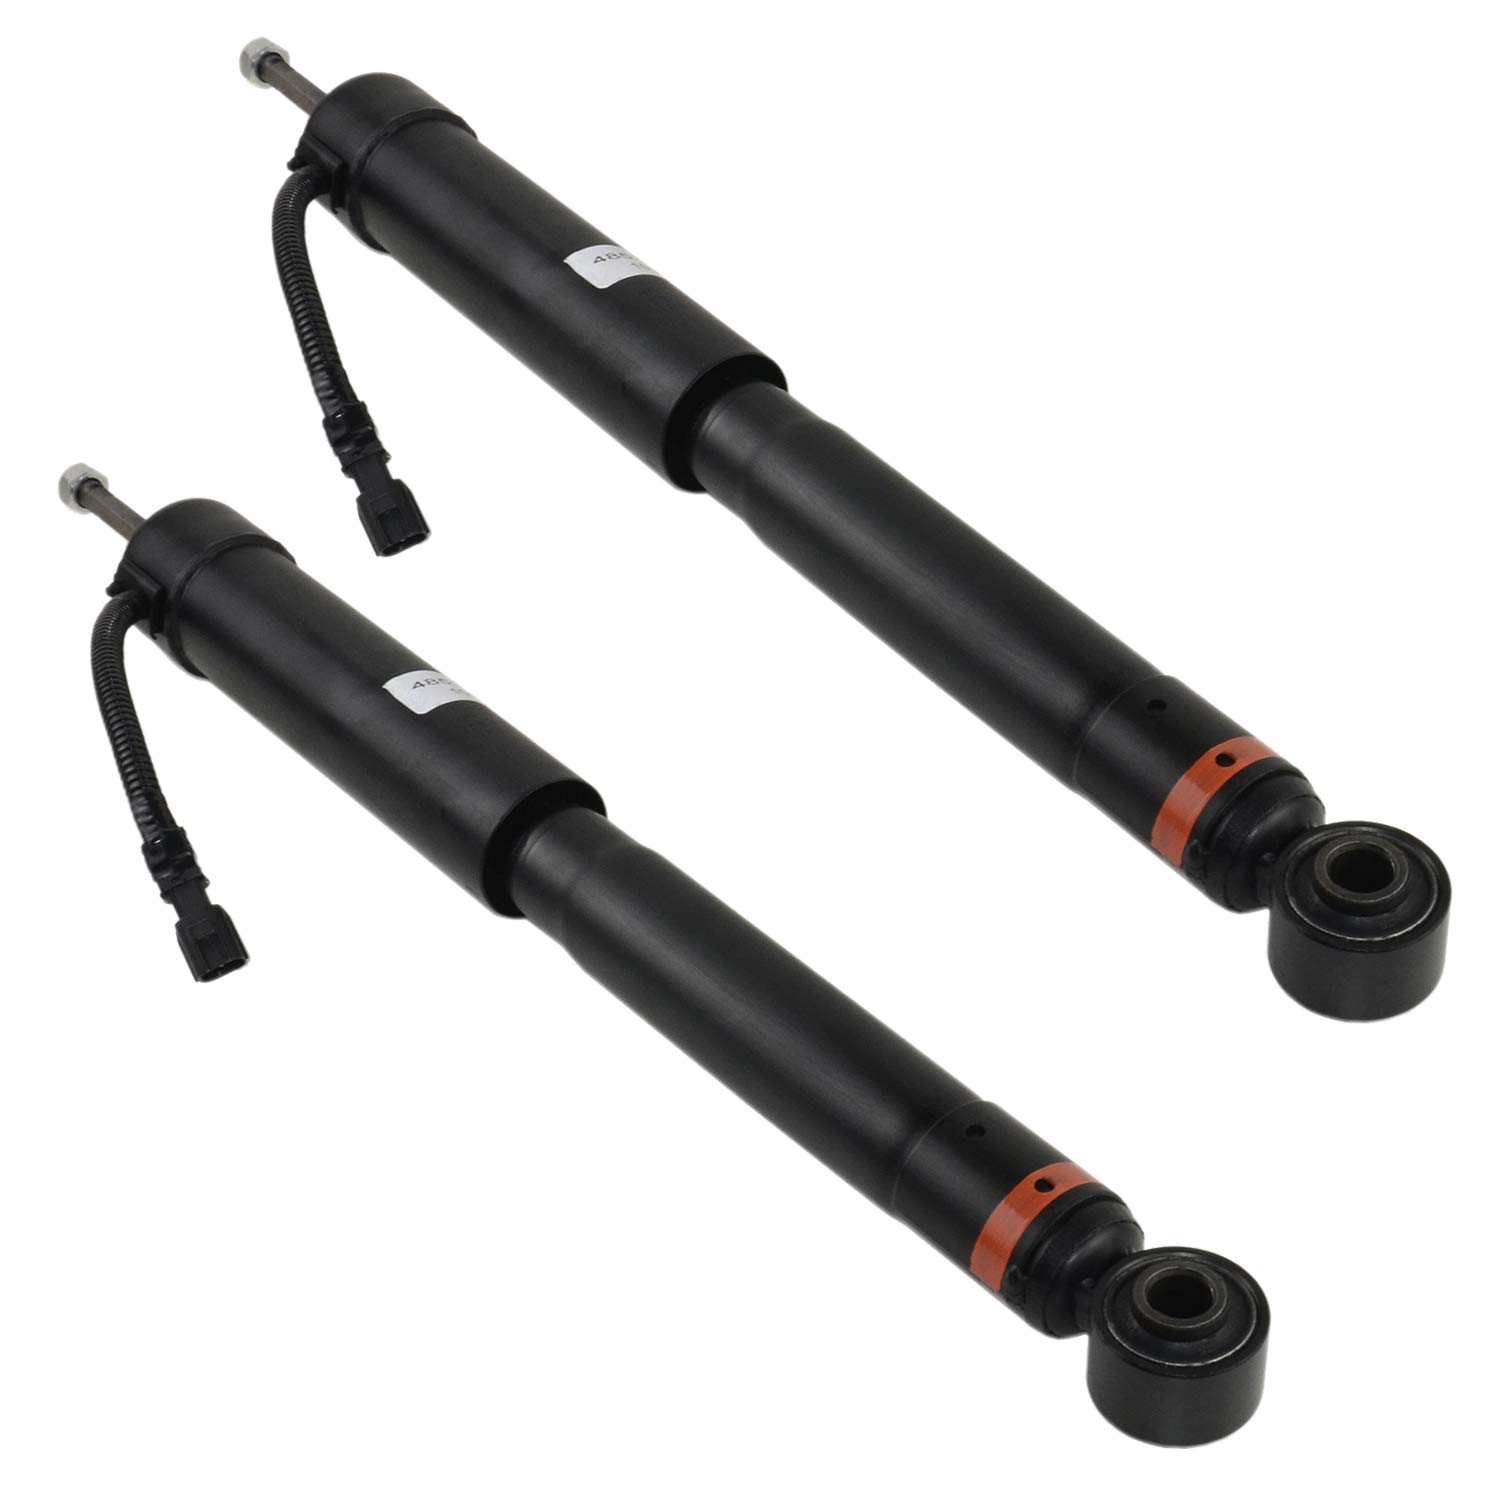 Koauto Left and Right Rear Shock Absorber Set For Toyota Land Cruiser Prado 120 2002-09 GX470 4.7L 2003-2009 48530-69485